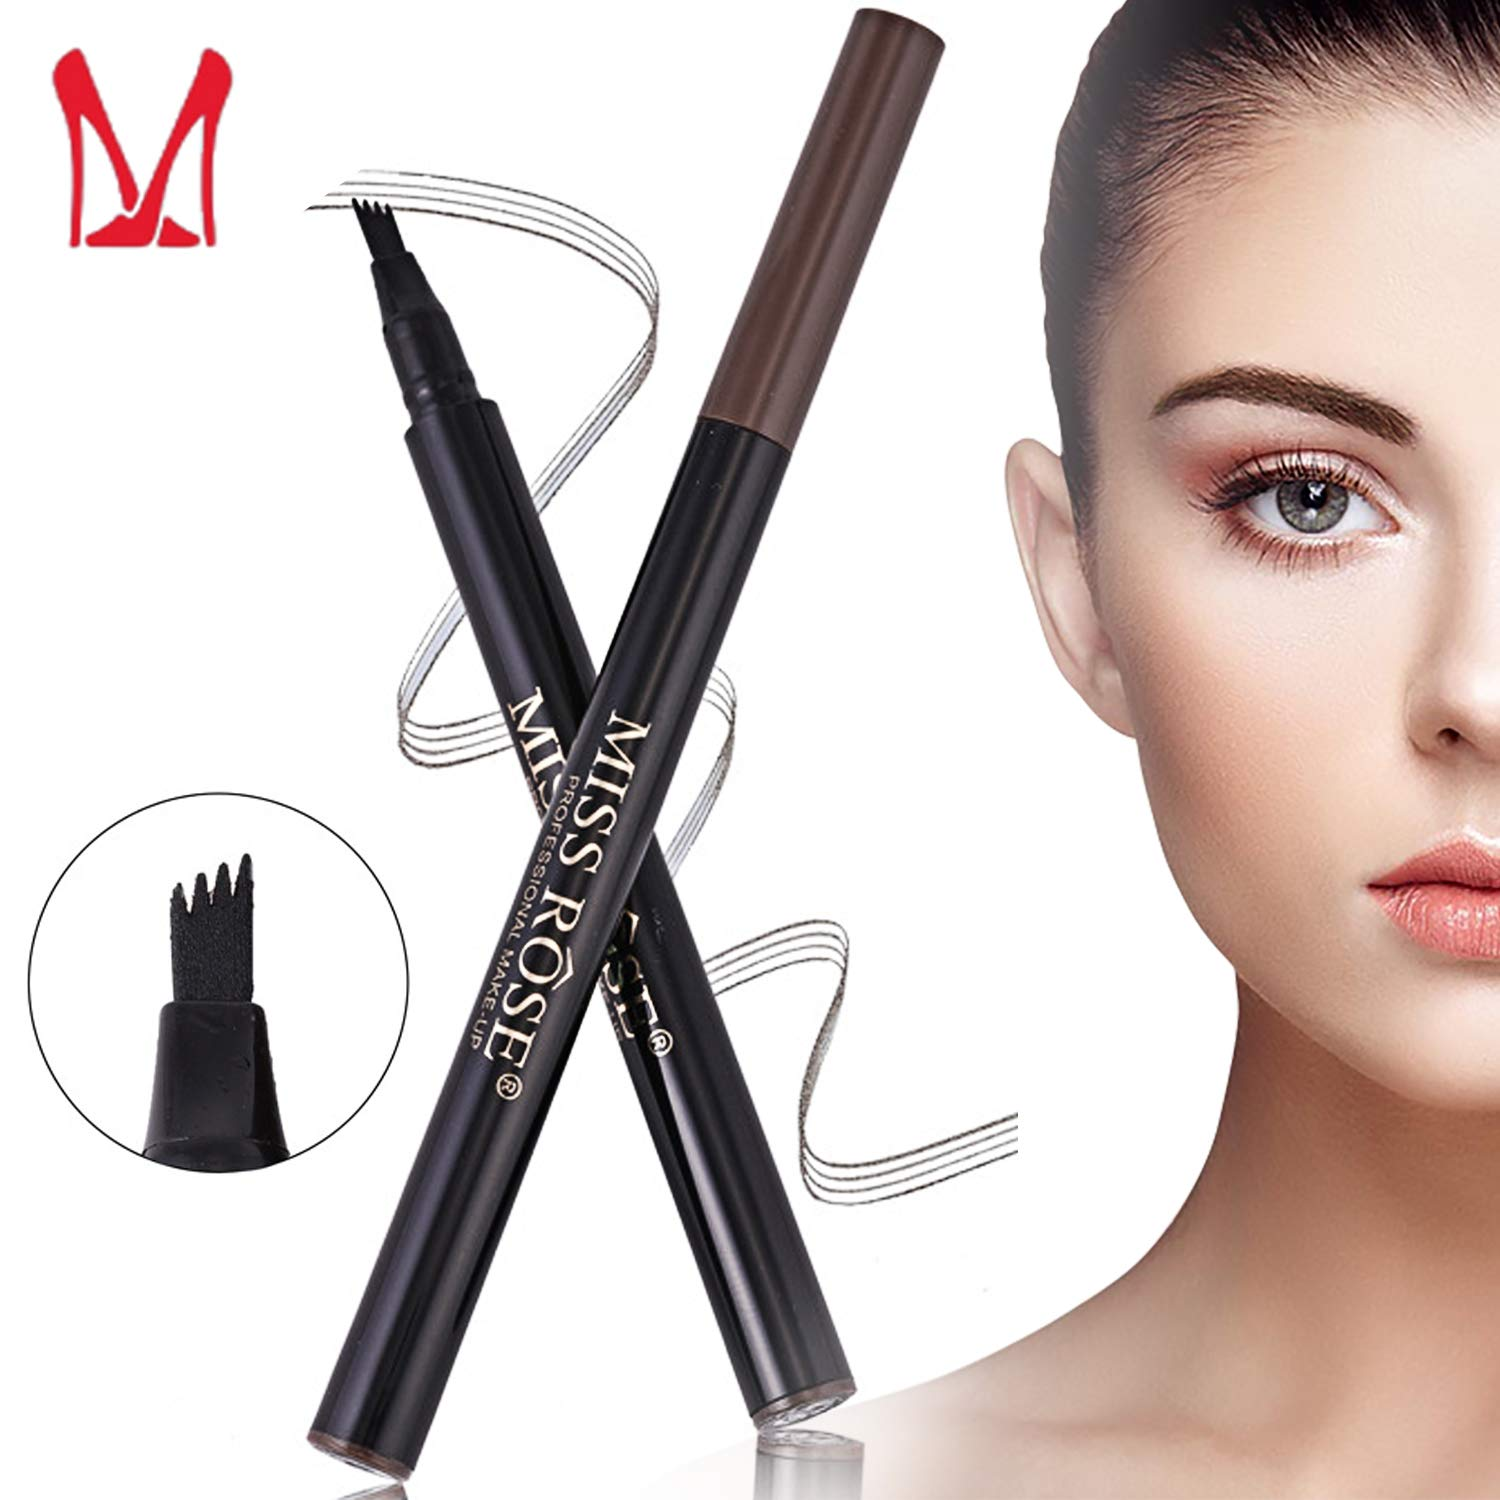 Ladygo 3D Eyebrow Tattoo Pen, Microblading Eyebrow Marker Pencil 4 Fork Tips Liquid Blonde Eye Makeup, Long-lasting Waterproof Smudge Proof Natural Look (01# - Chestnut) YiWu MeiDai Cosmetics Co. Ltd